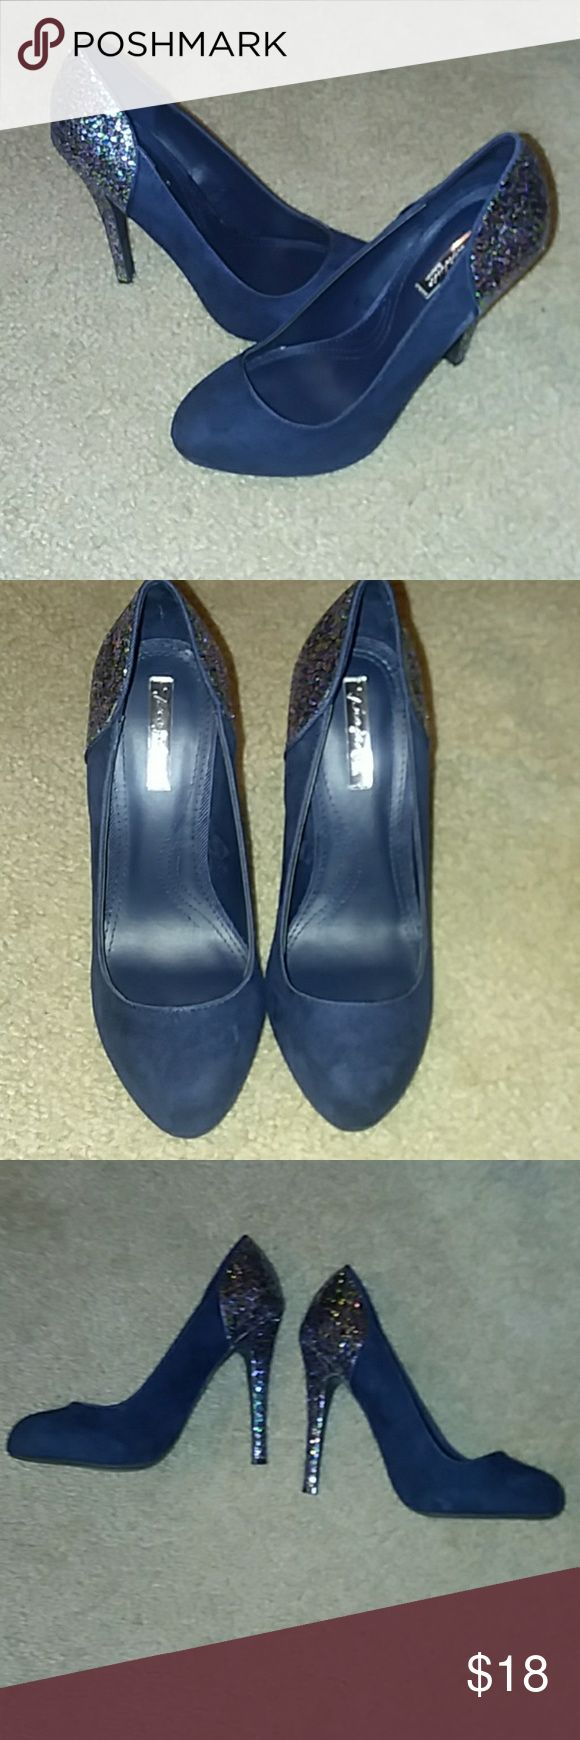 Zara Size 6 (36 UK) Navy blue suede pumps with multi colored (gold, baby pink, green and blue) glitter above heels. Worn once, no flaws and look brand new! Zara Shoes Heels